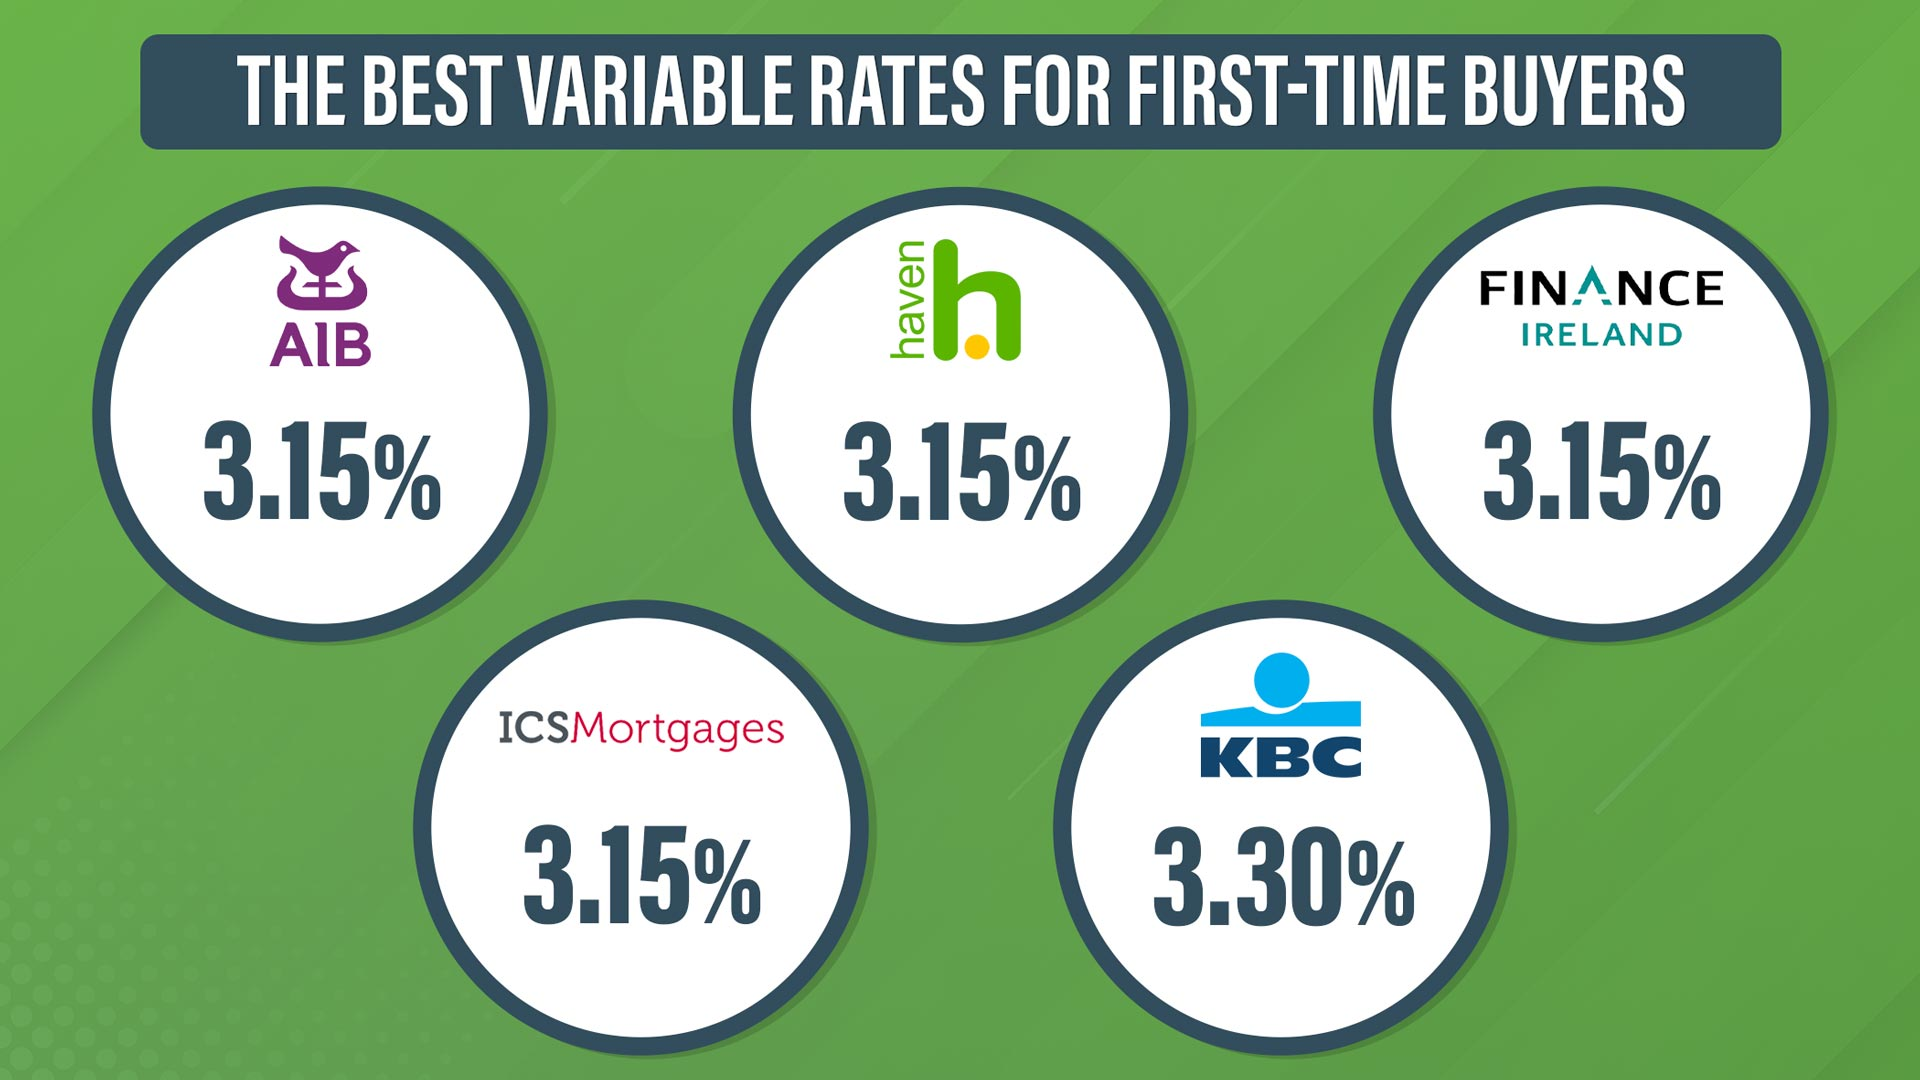 Bank Home Mortgage Rates Which Bank Has The Best Mortgage Rates For First Time Buyers